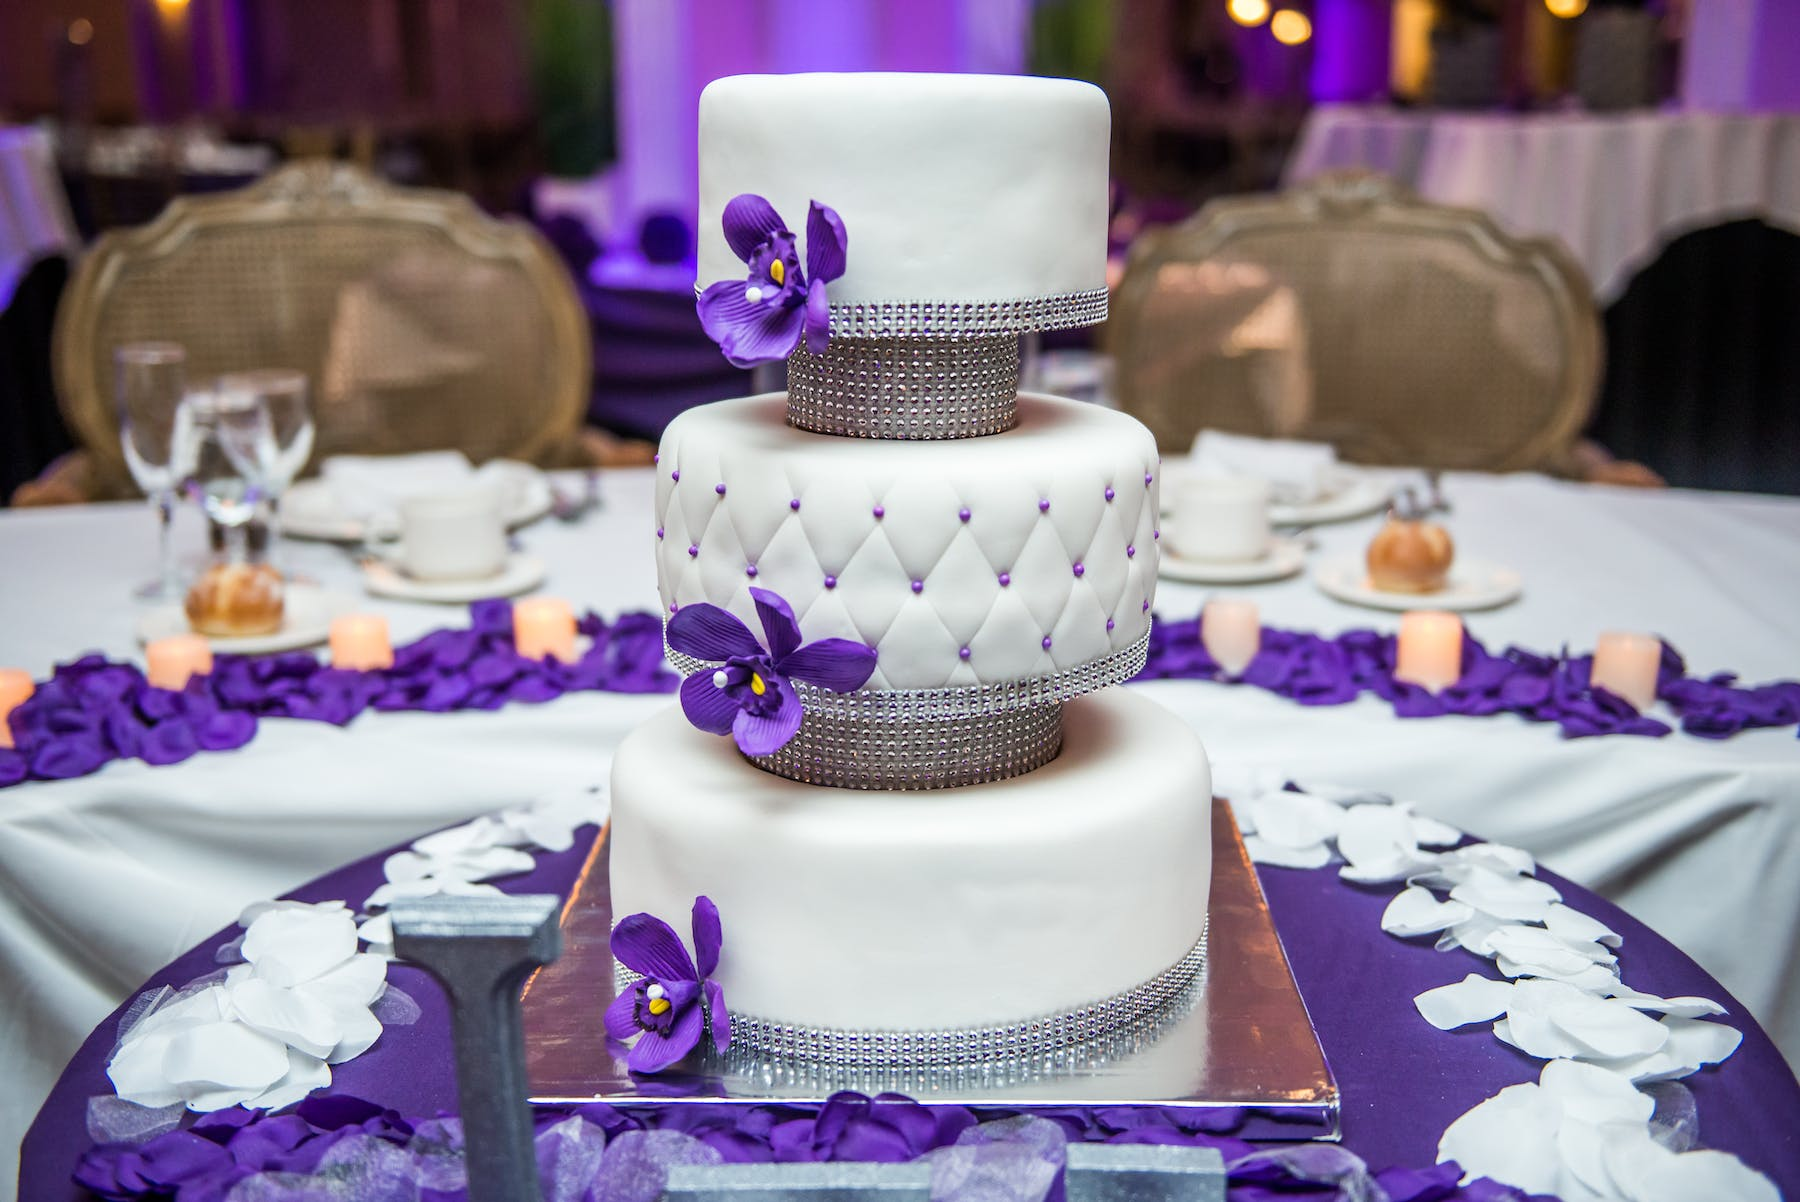 a decorated cake on a table